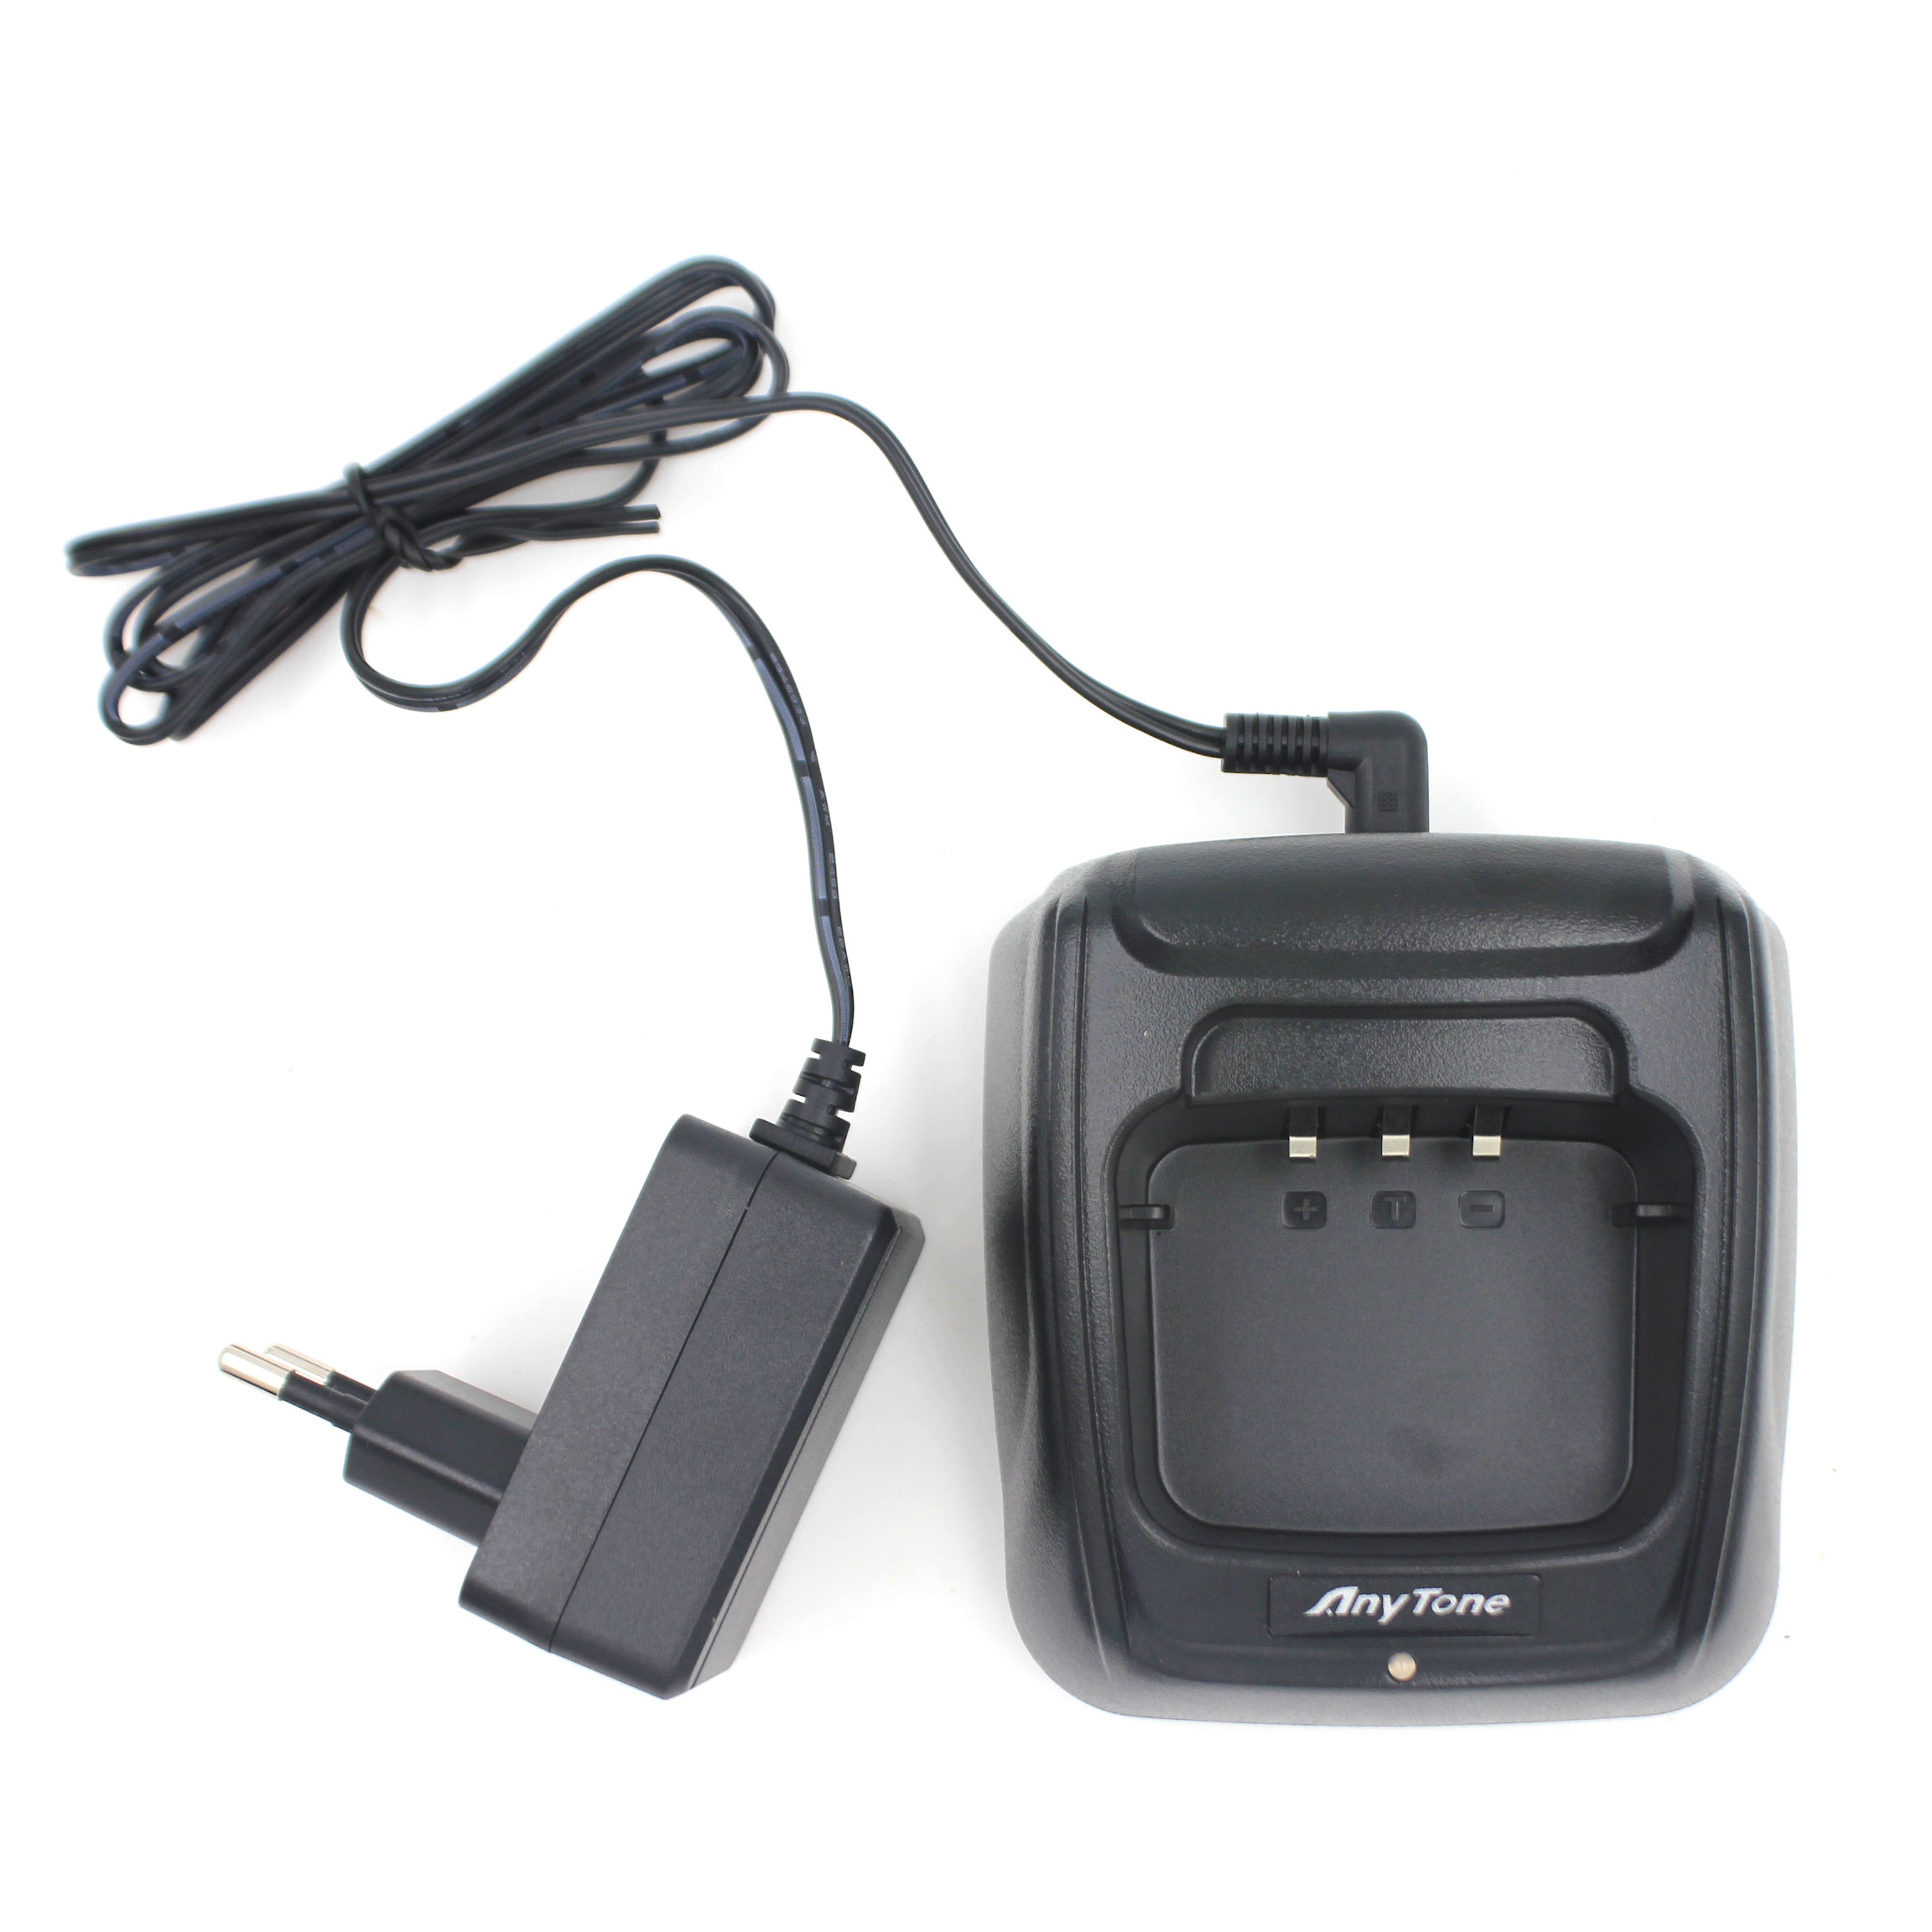 Original Desk Charger For AT-D878UV Plus Walkie Talkie DMR Radio